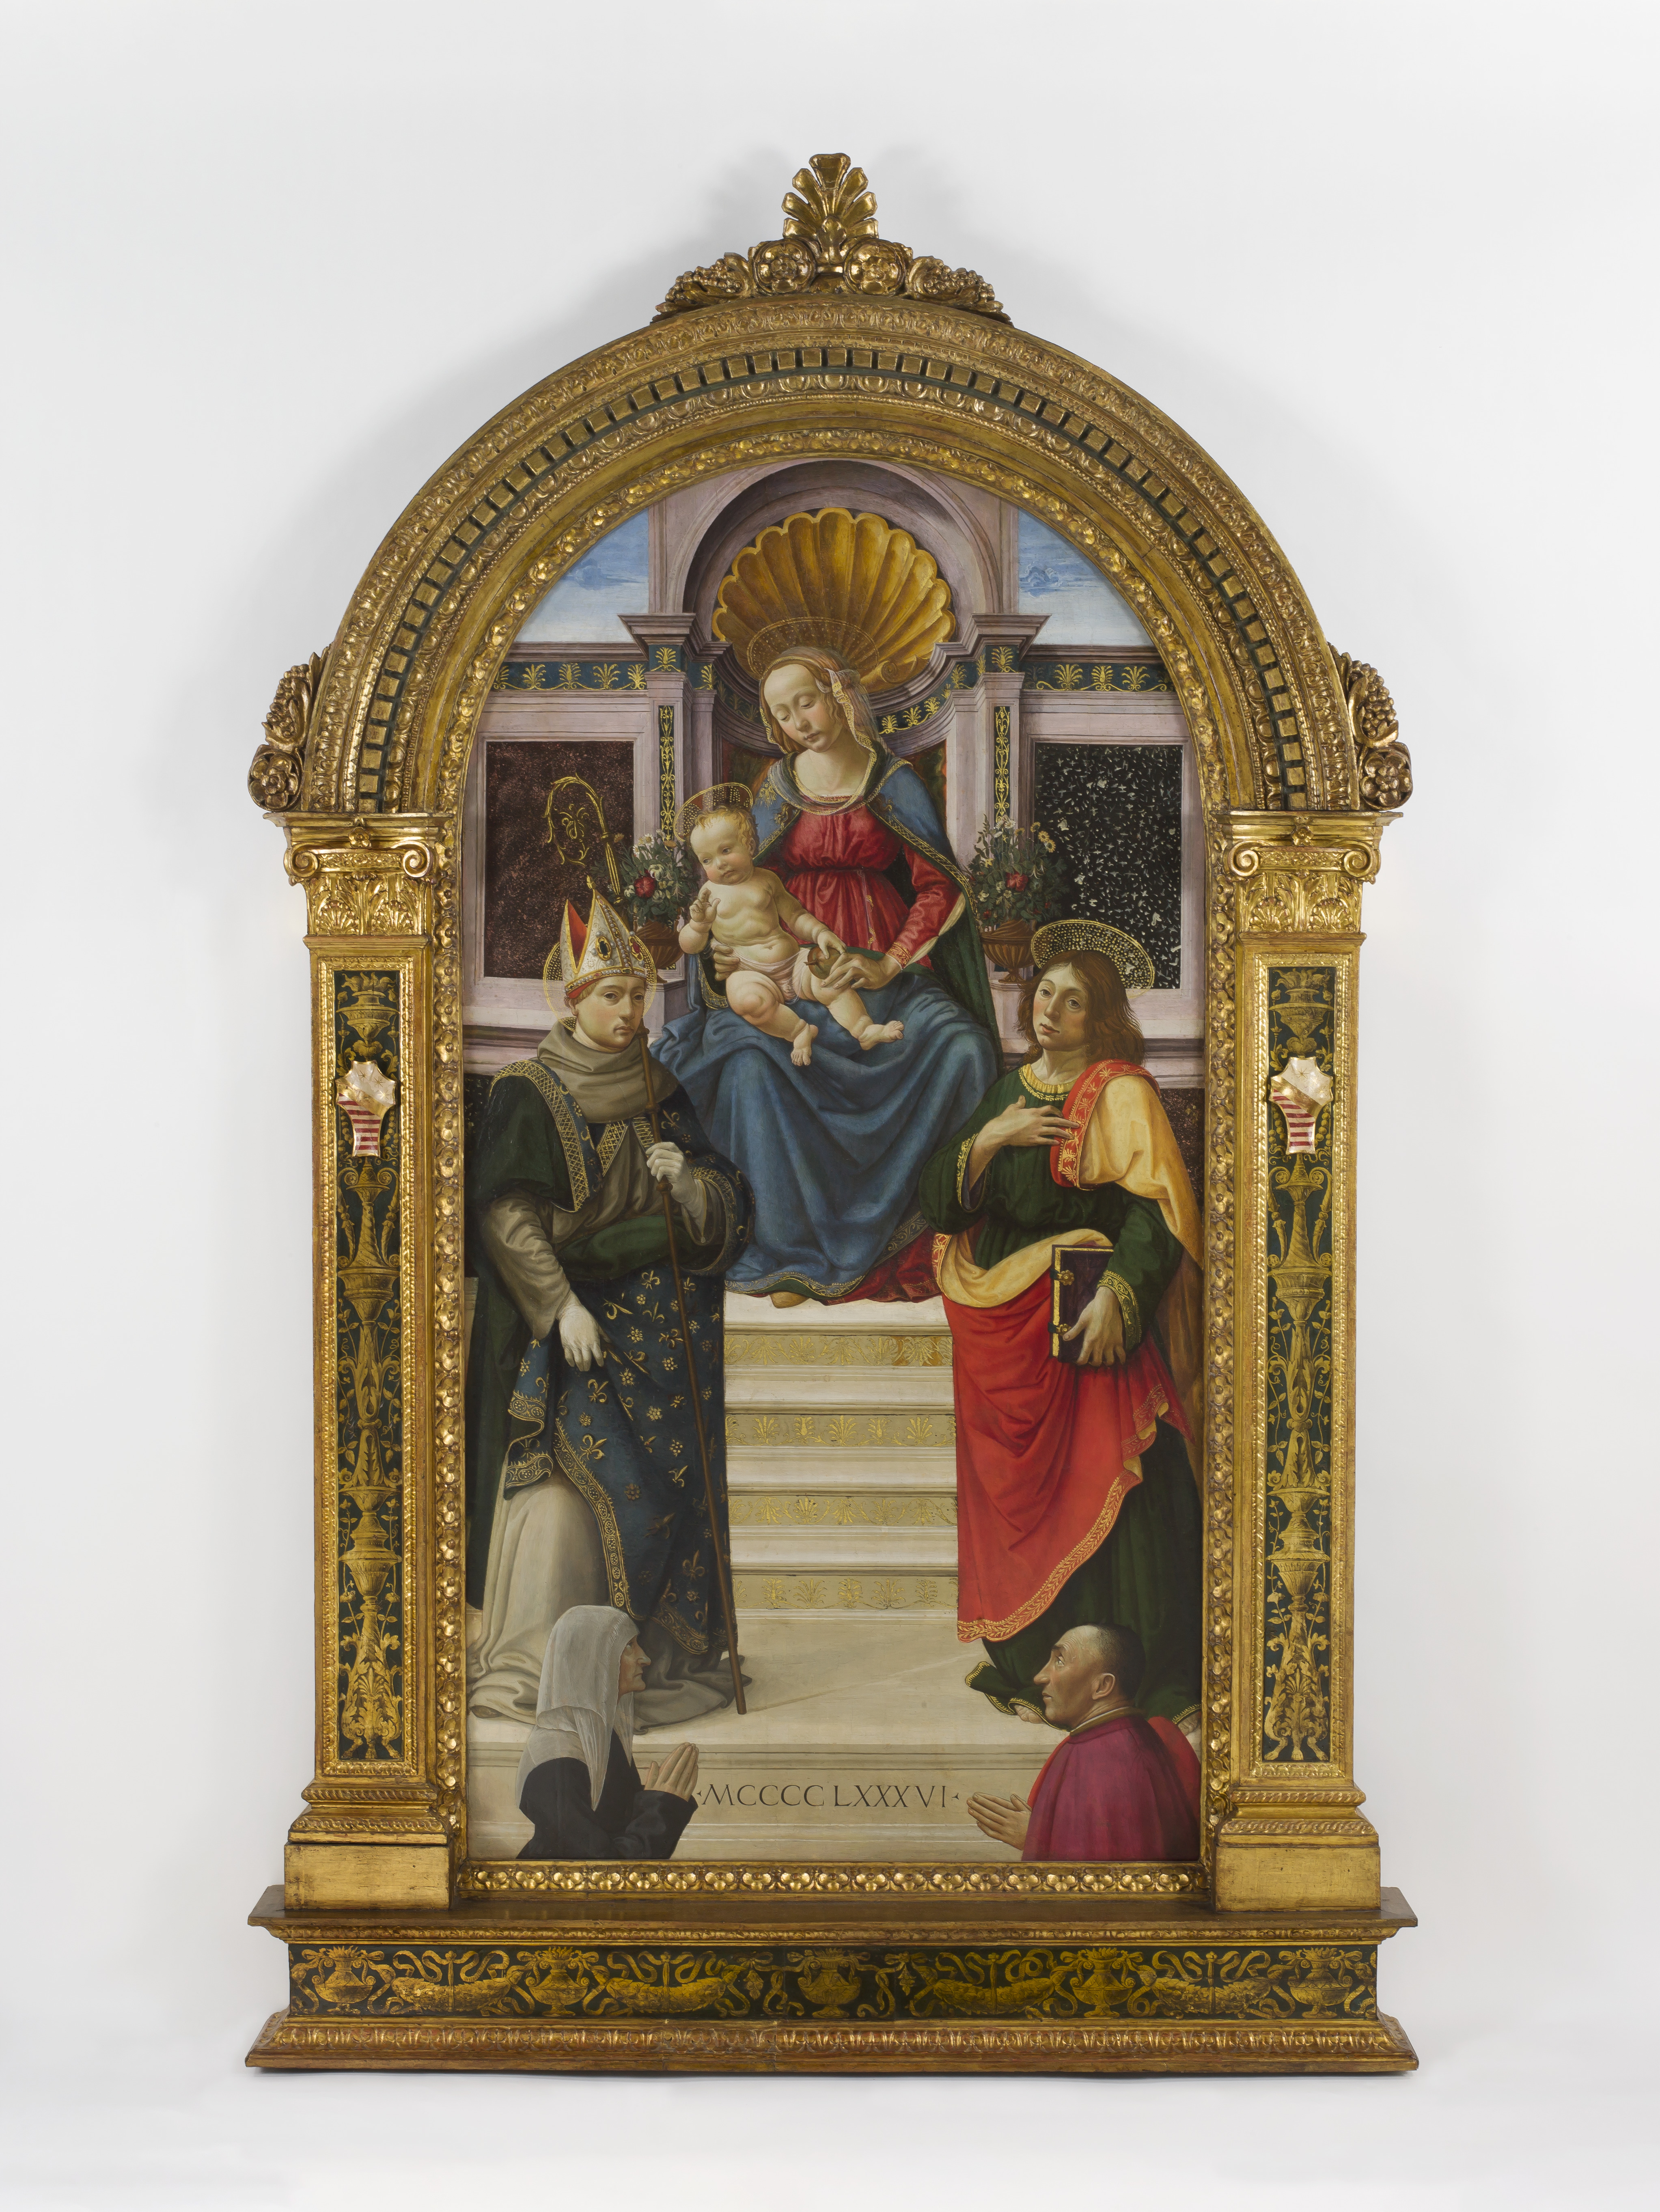 1486 Davide Guirlandaio St Louis of Toulouse, John Evangelist, and Donors Ludovico Folchi and his wife Tommasa Saint Louis Art Museum, Missouri,